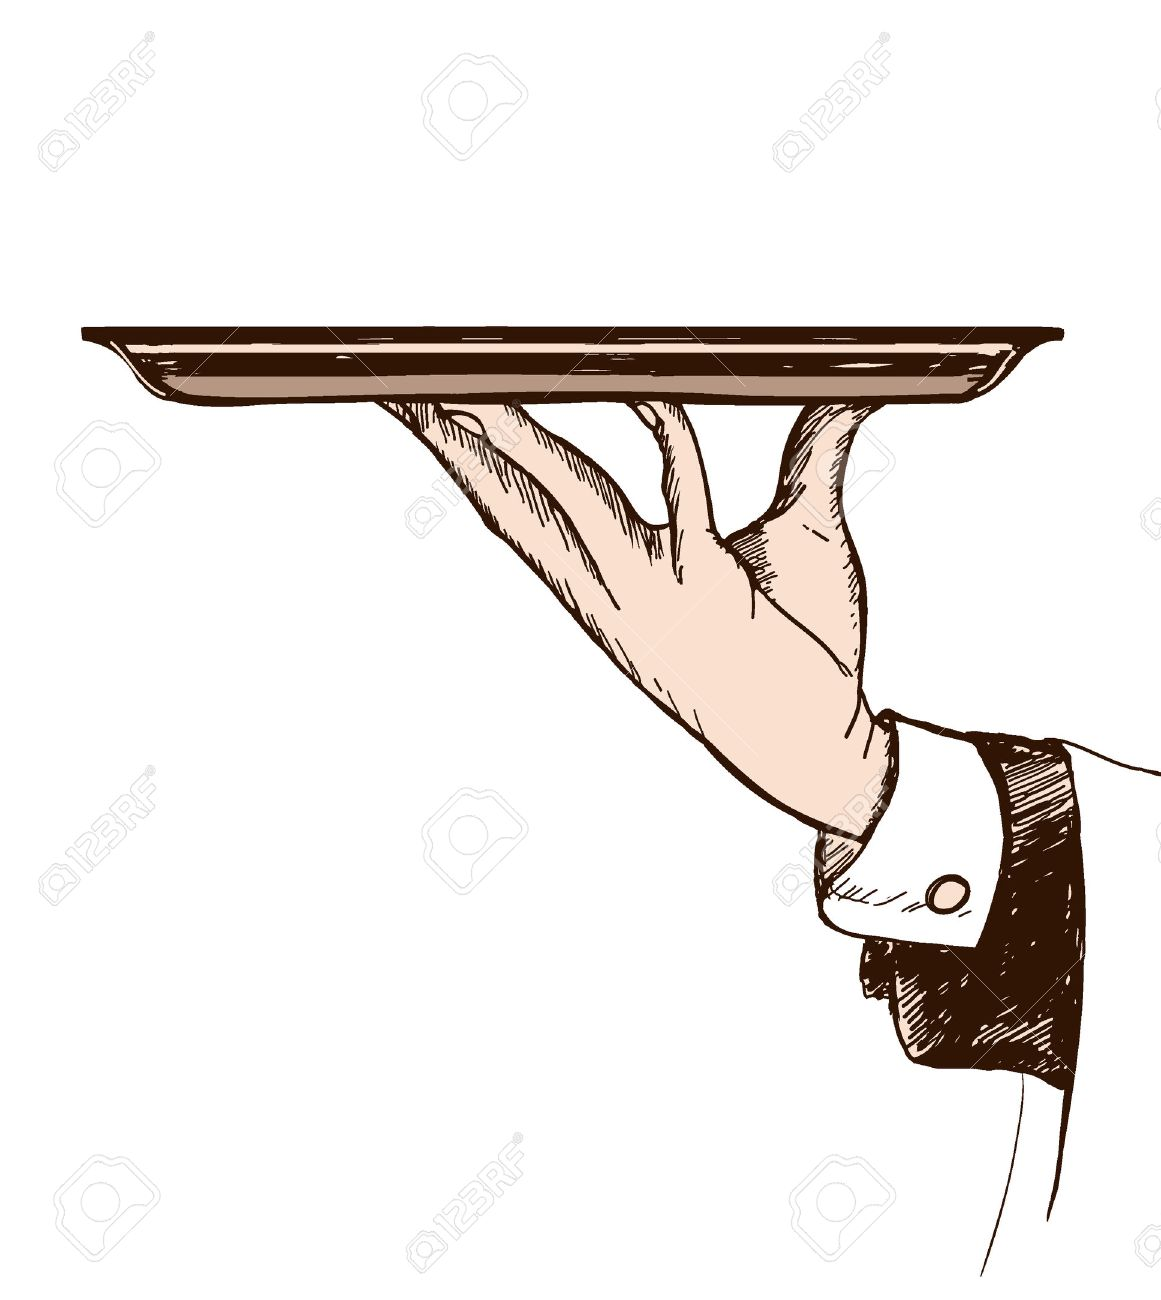 1161x1300 Hand Drawn Illustration Of Waiters Hand Holding A Tray Royalty